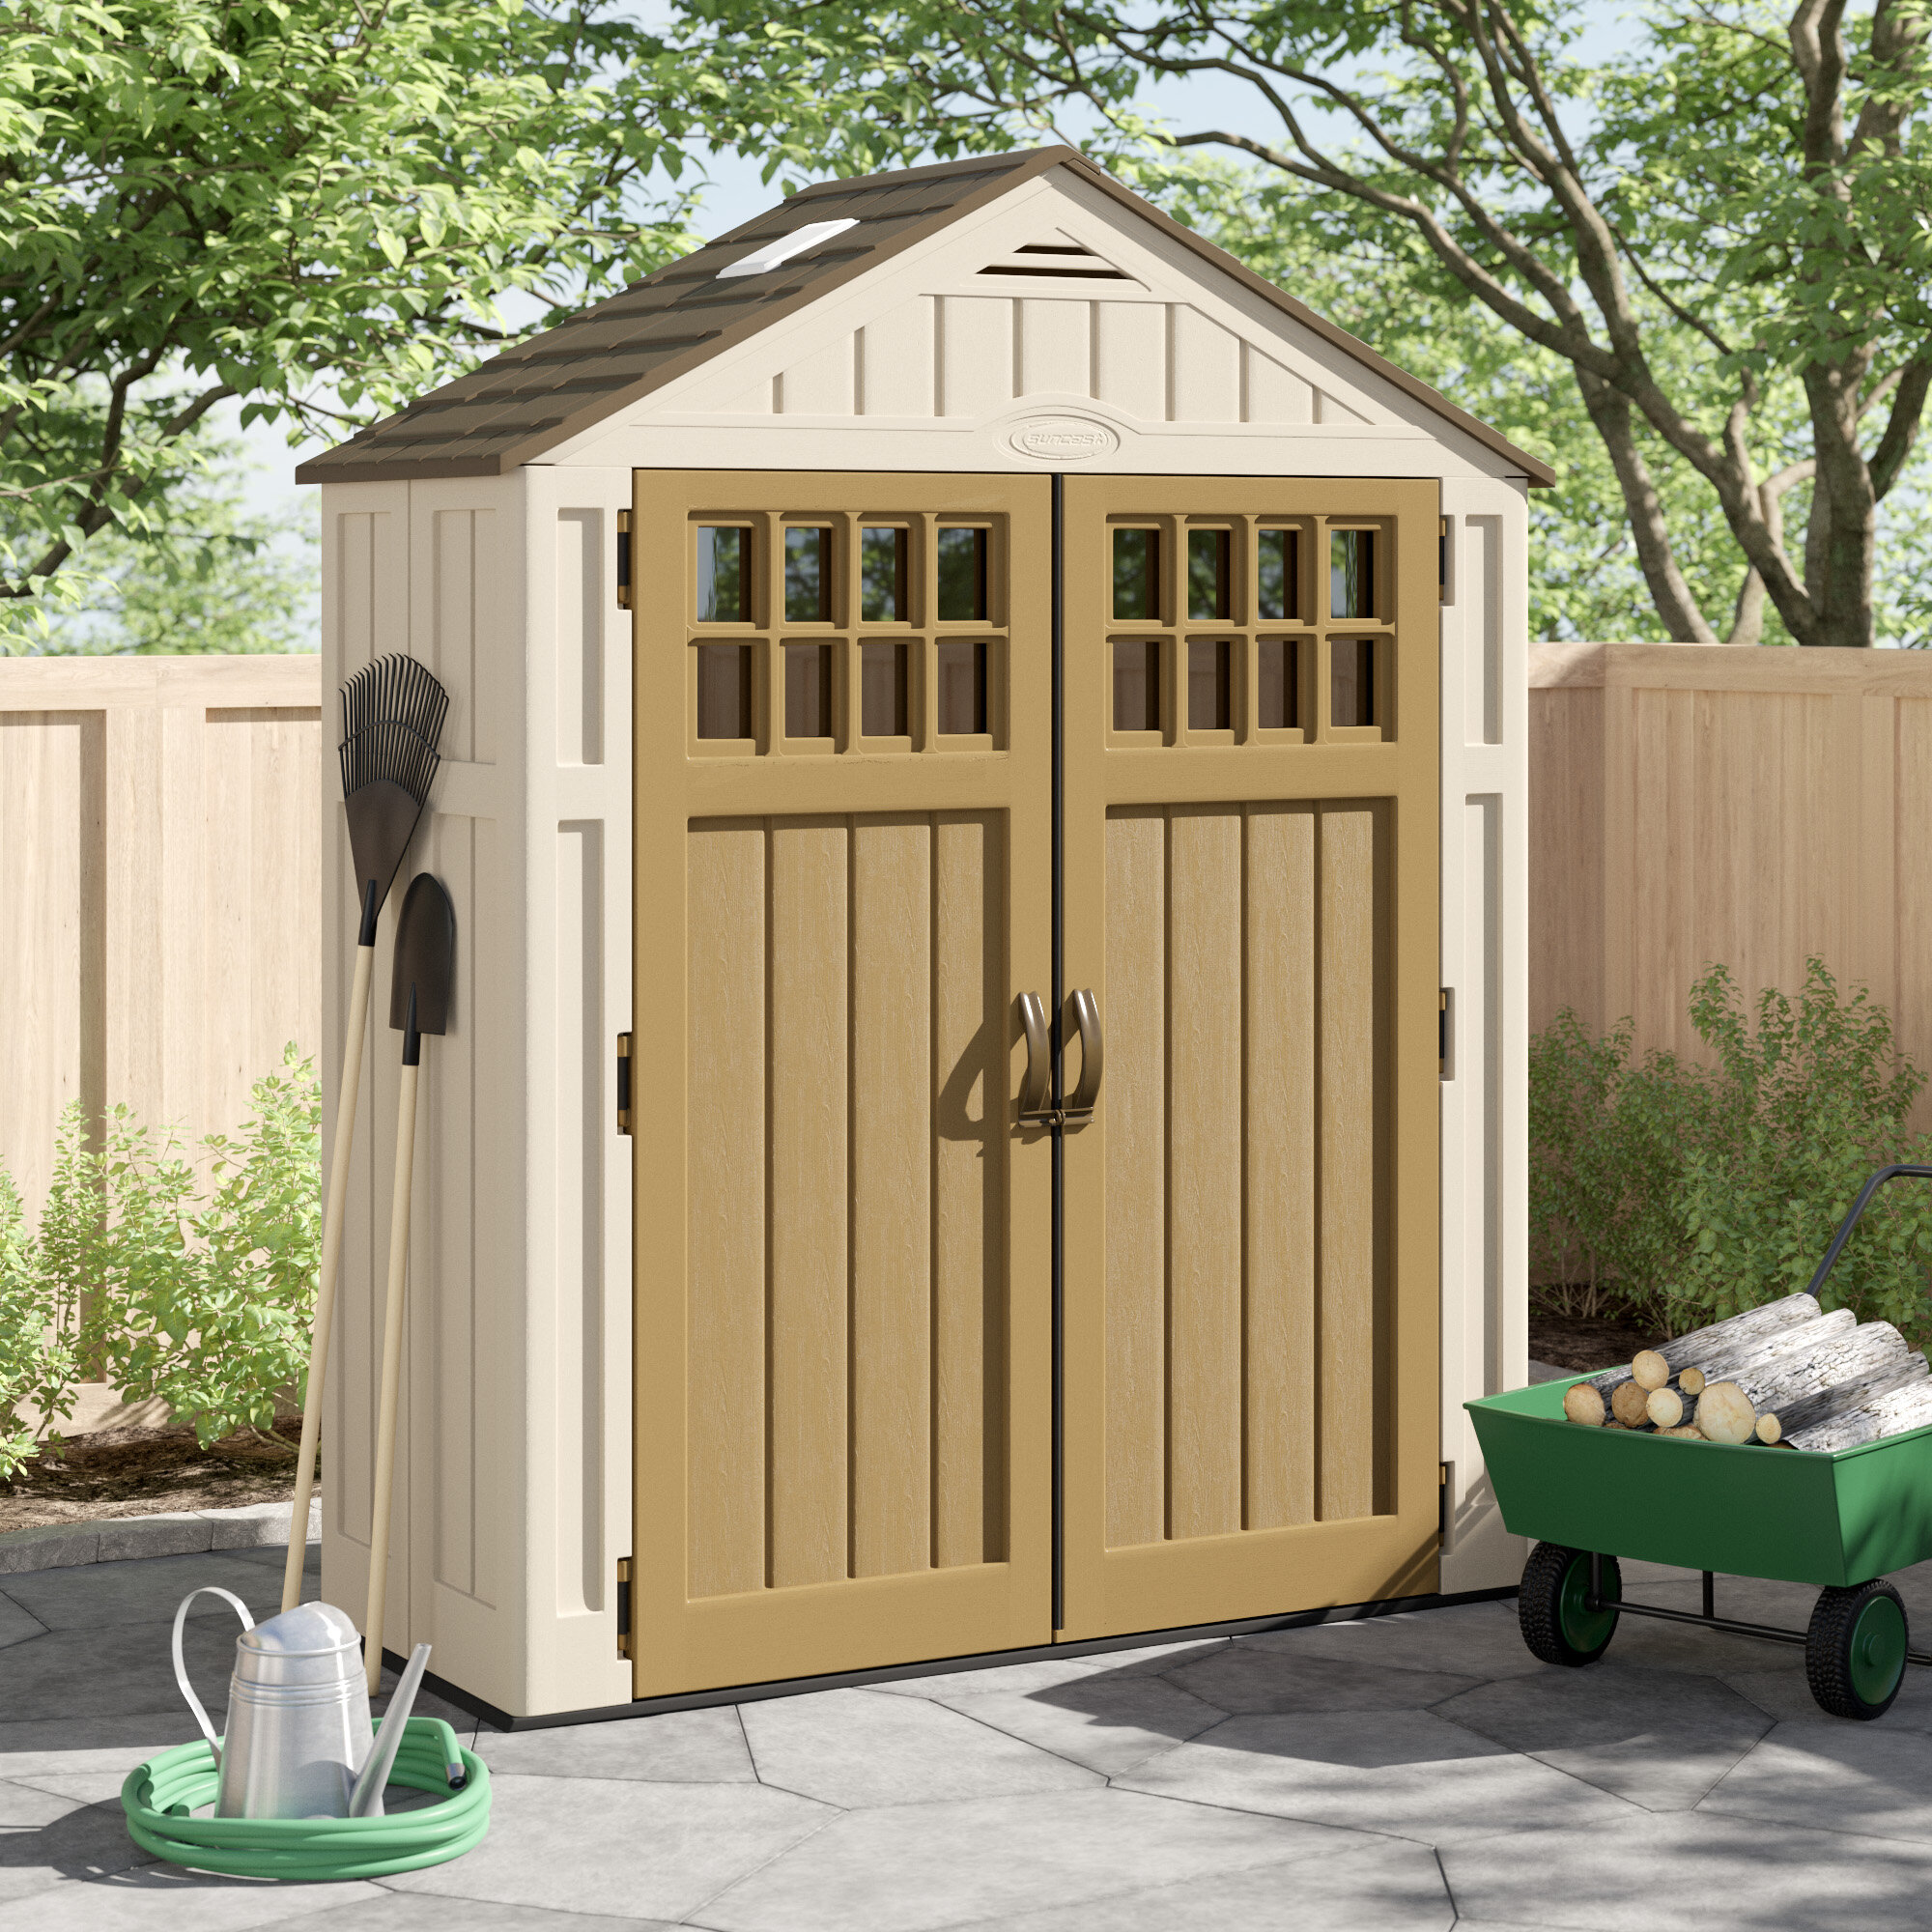 Everett Outdoor 9 ft. W x 9 ft. D Plastic Storage Shed